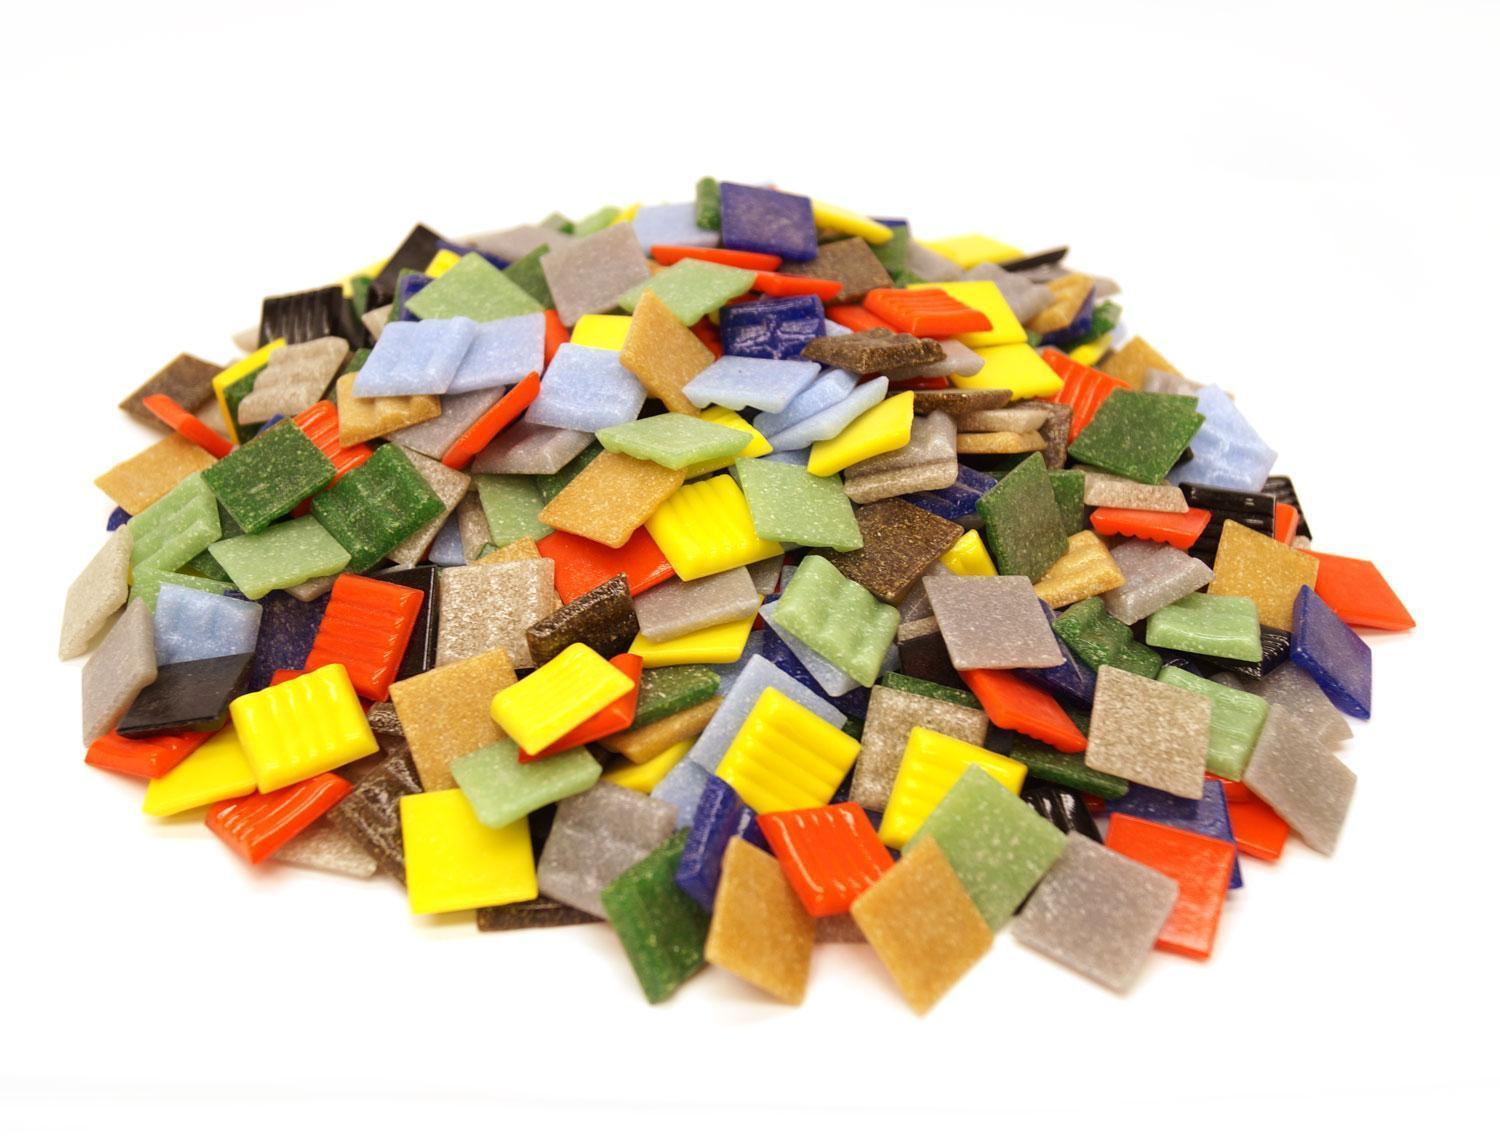 3/4 Venetian Glass Tile Value Assortment - 3 lb